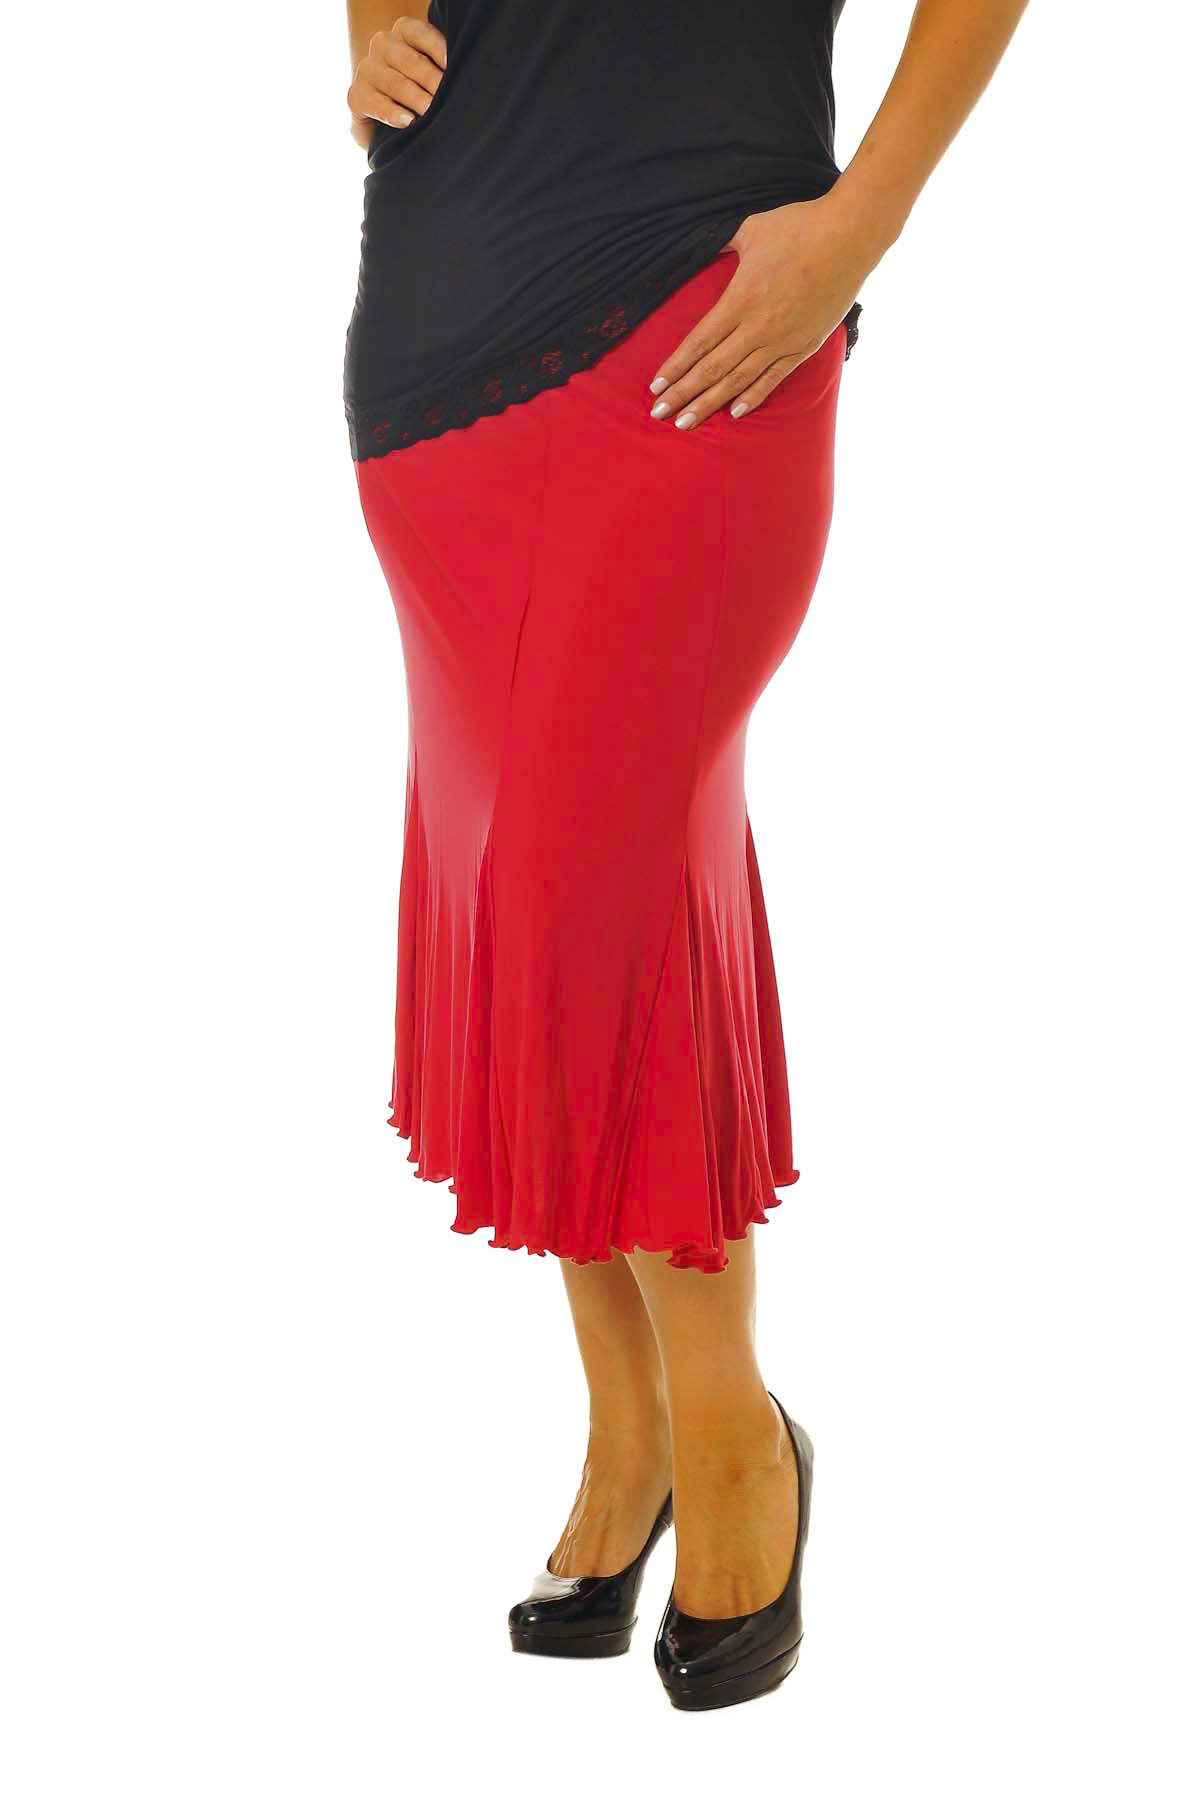 New-Womens-Skirt-Plus-Size-Ladies-Ity-Mid-Length-Flared-Formal-Midi-Nouvelle